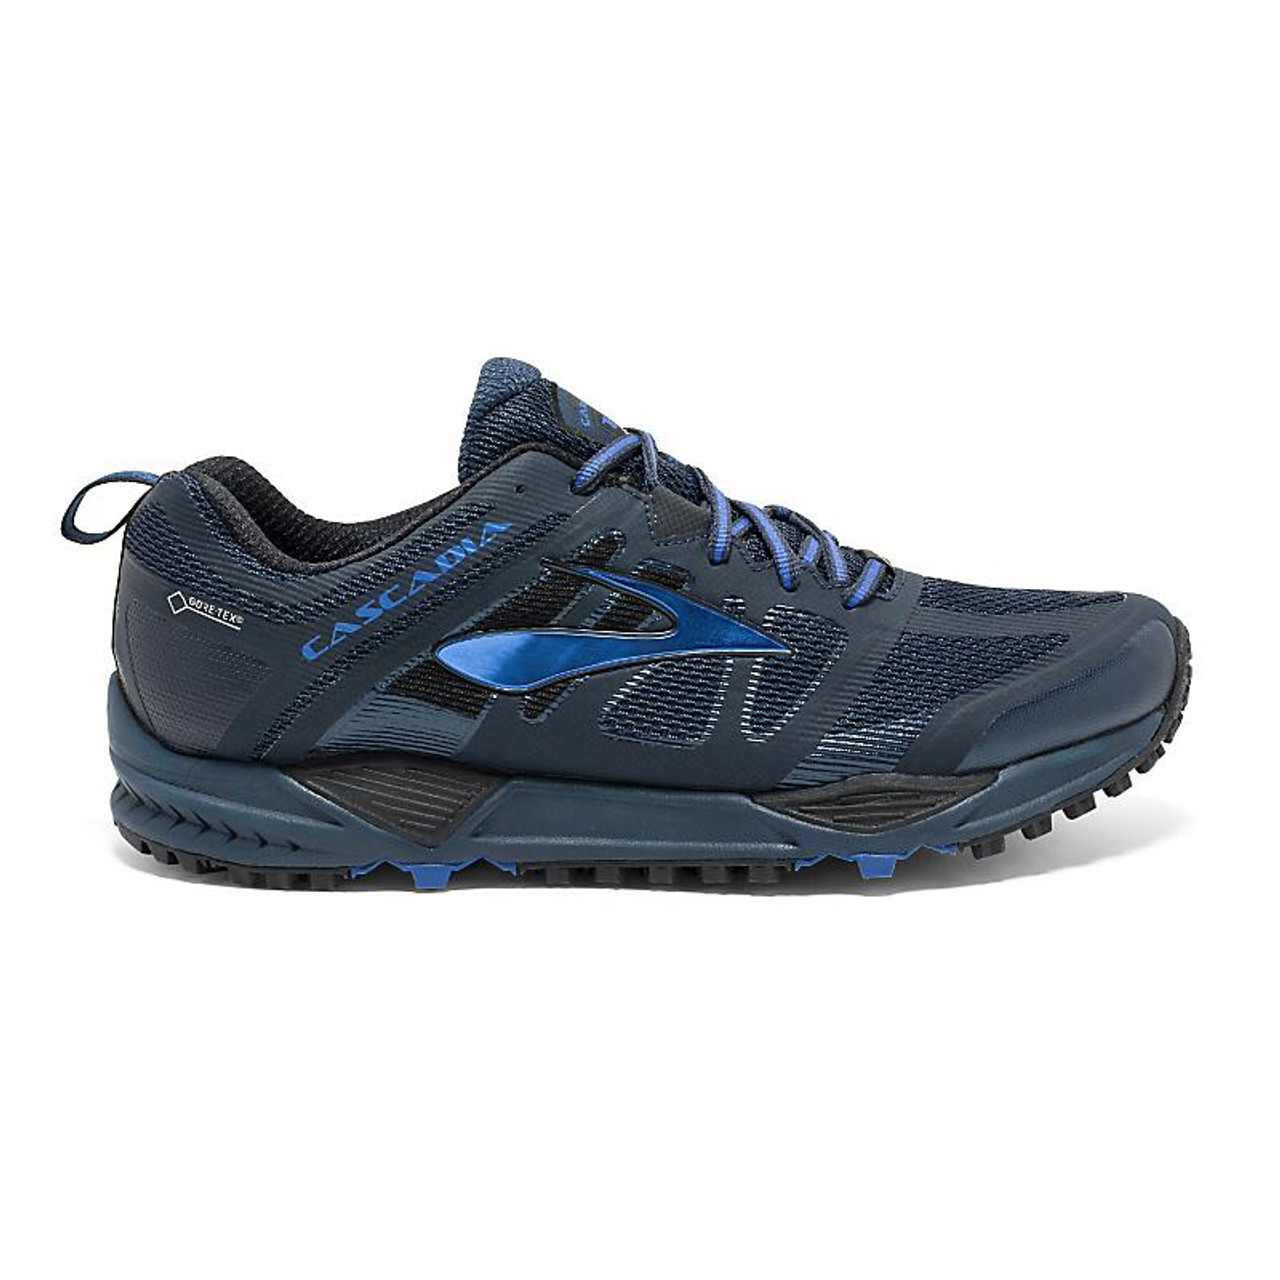 474c85bdc6ee1 Men s Brooks Cascadia 11 GTX Trail Running Shoe